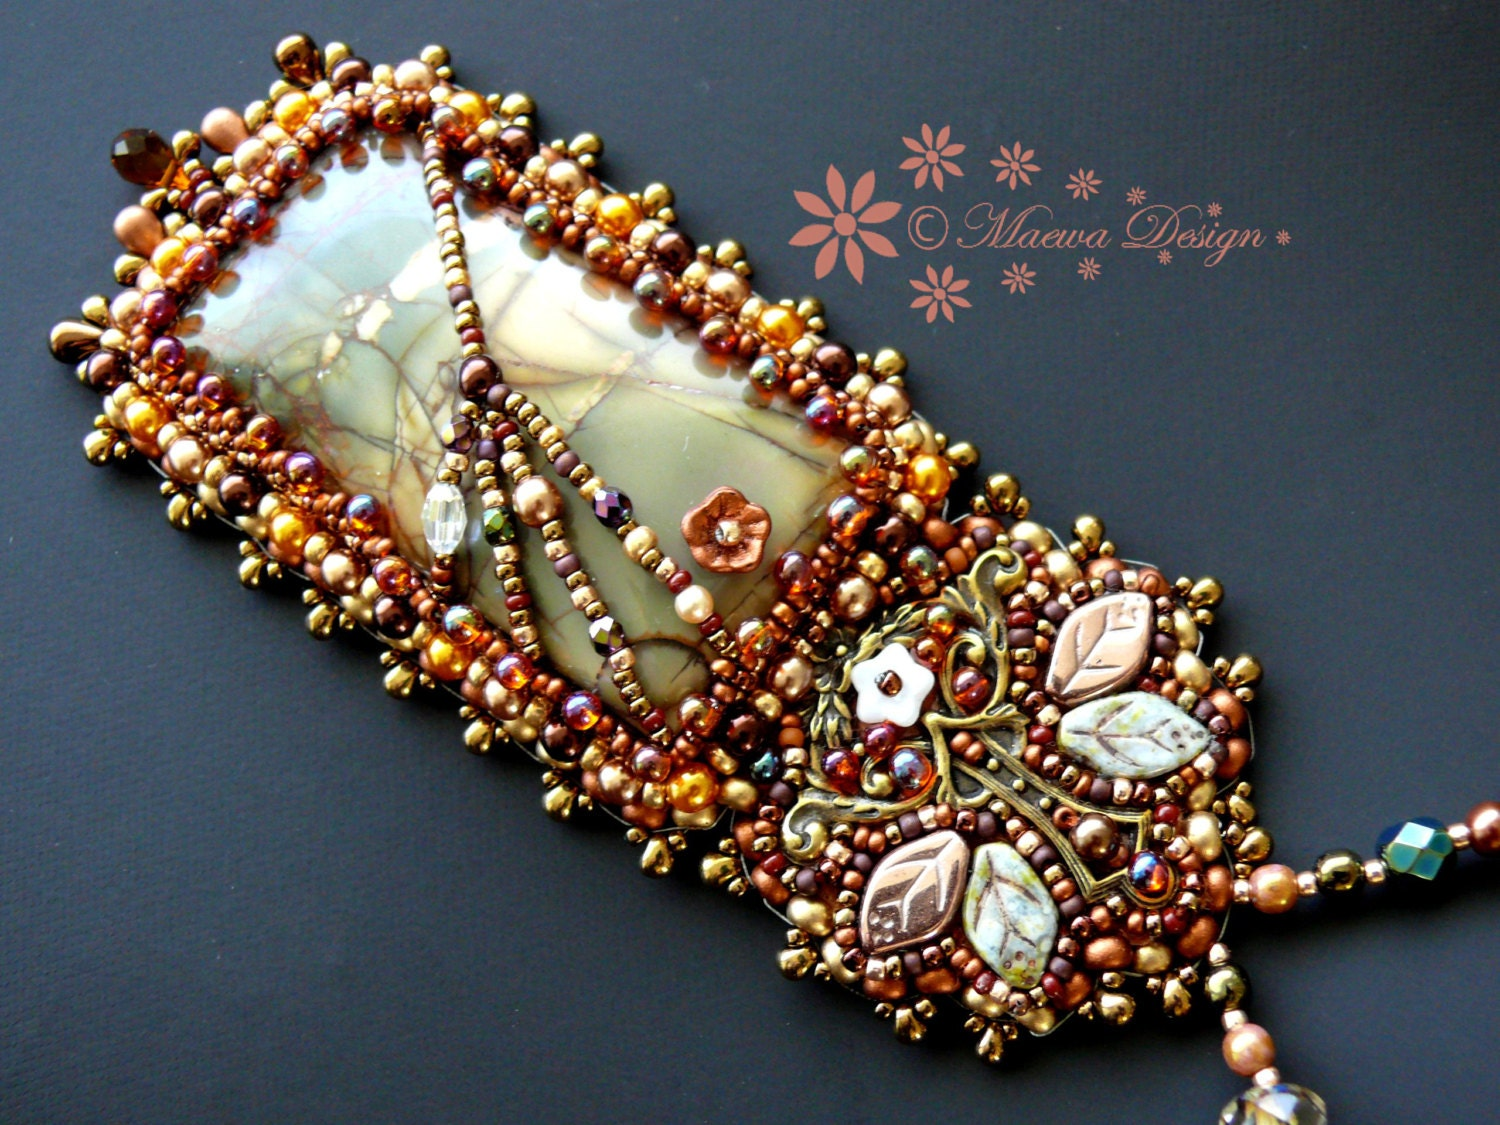 Bead embroidered pendant necklace early spring by maewadesign